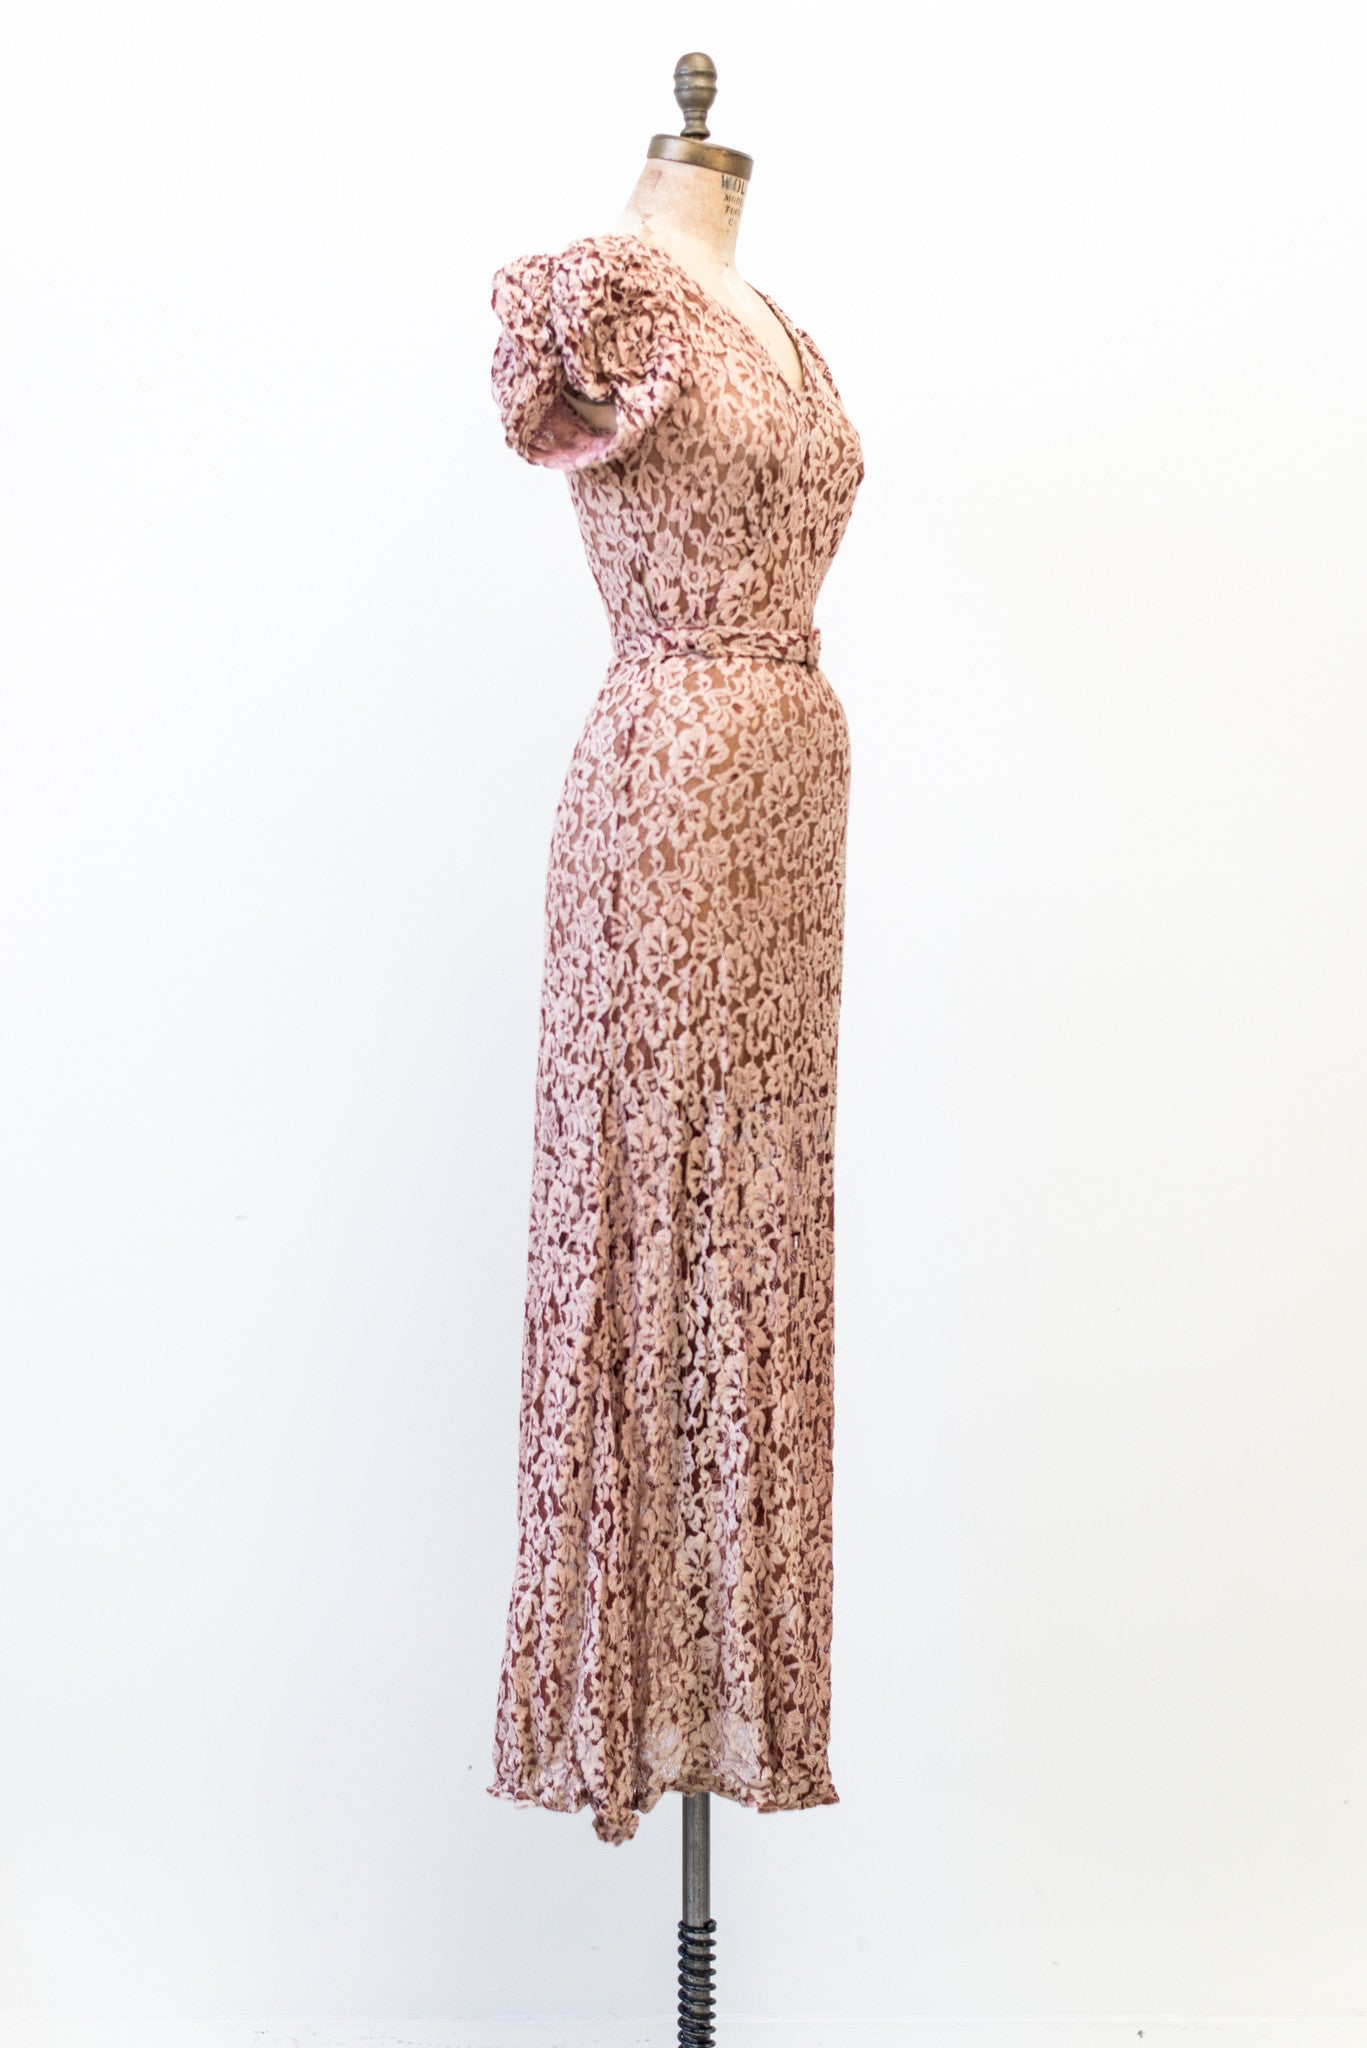 Direct Import Home Decor 1930s Burgundy Lace Gown Xs S G O S S A M E R